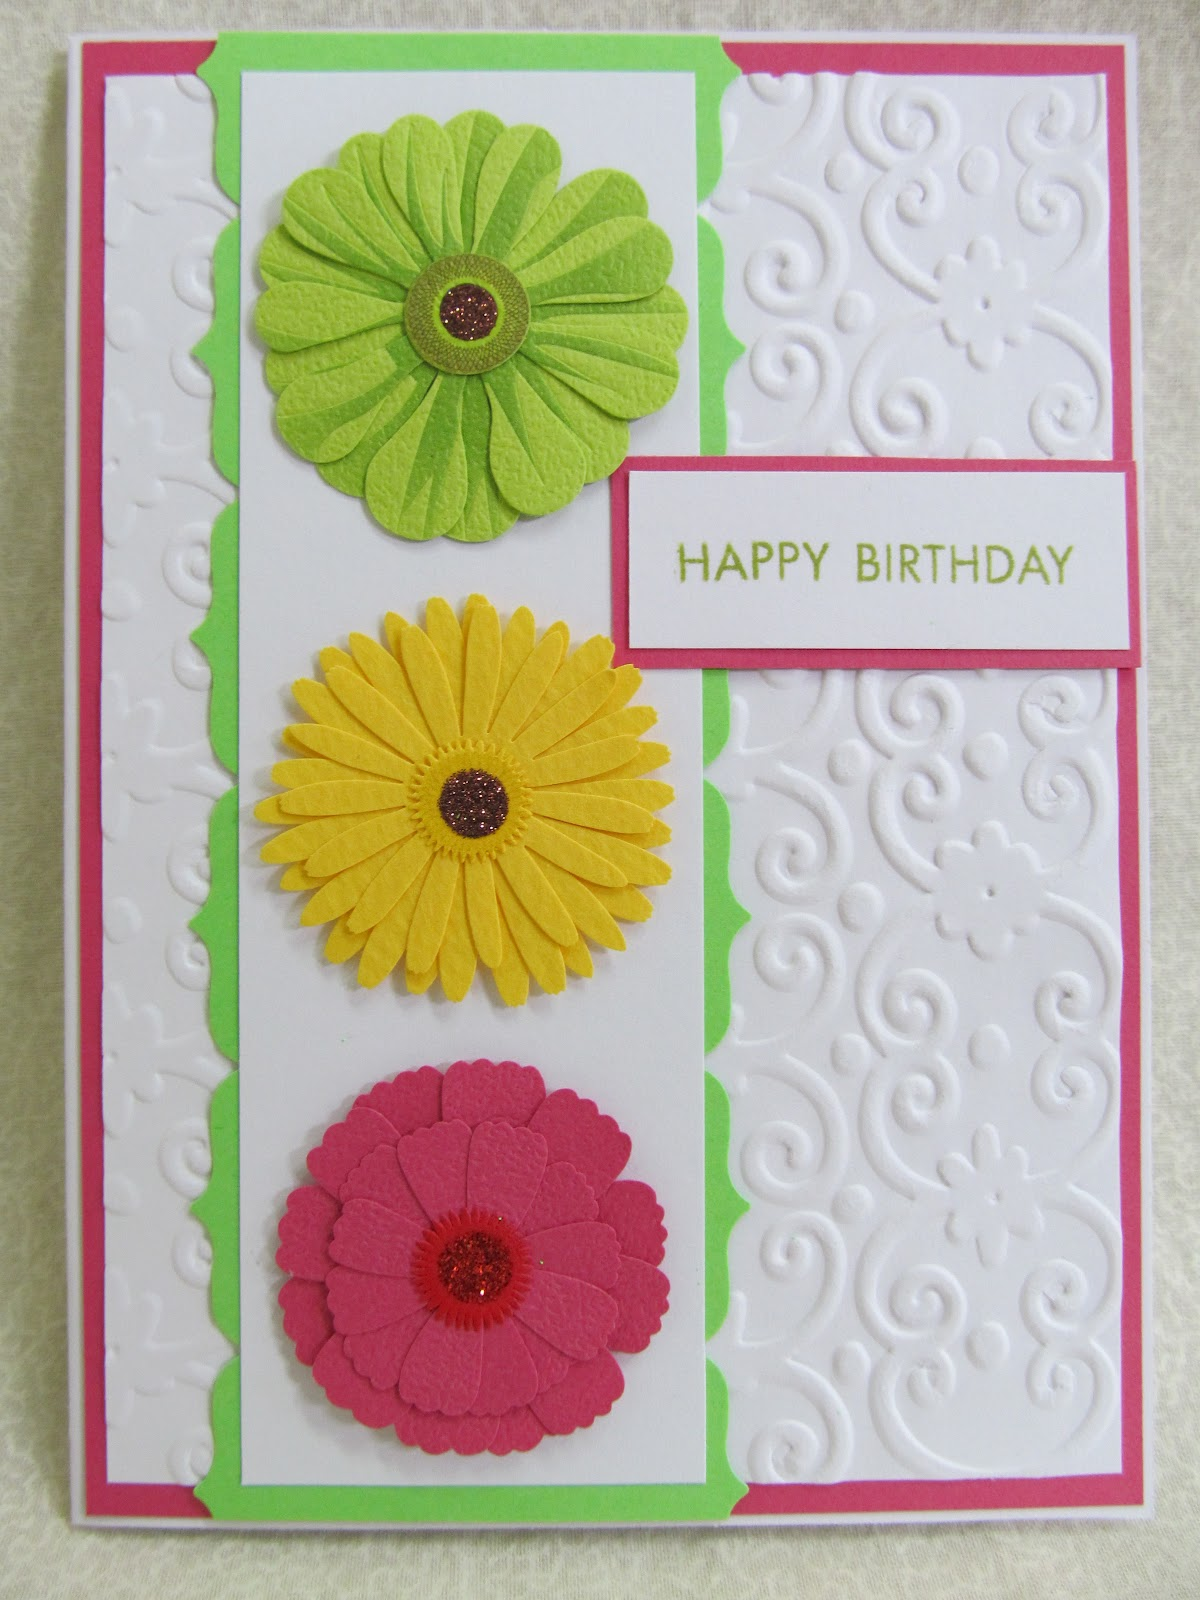 The Collection of Beautiful Birthday Cards For Friends 7